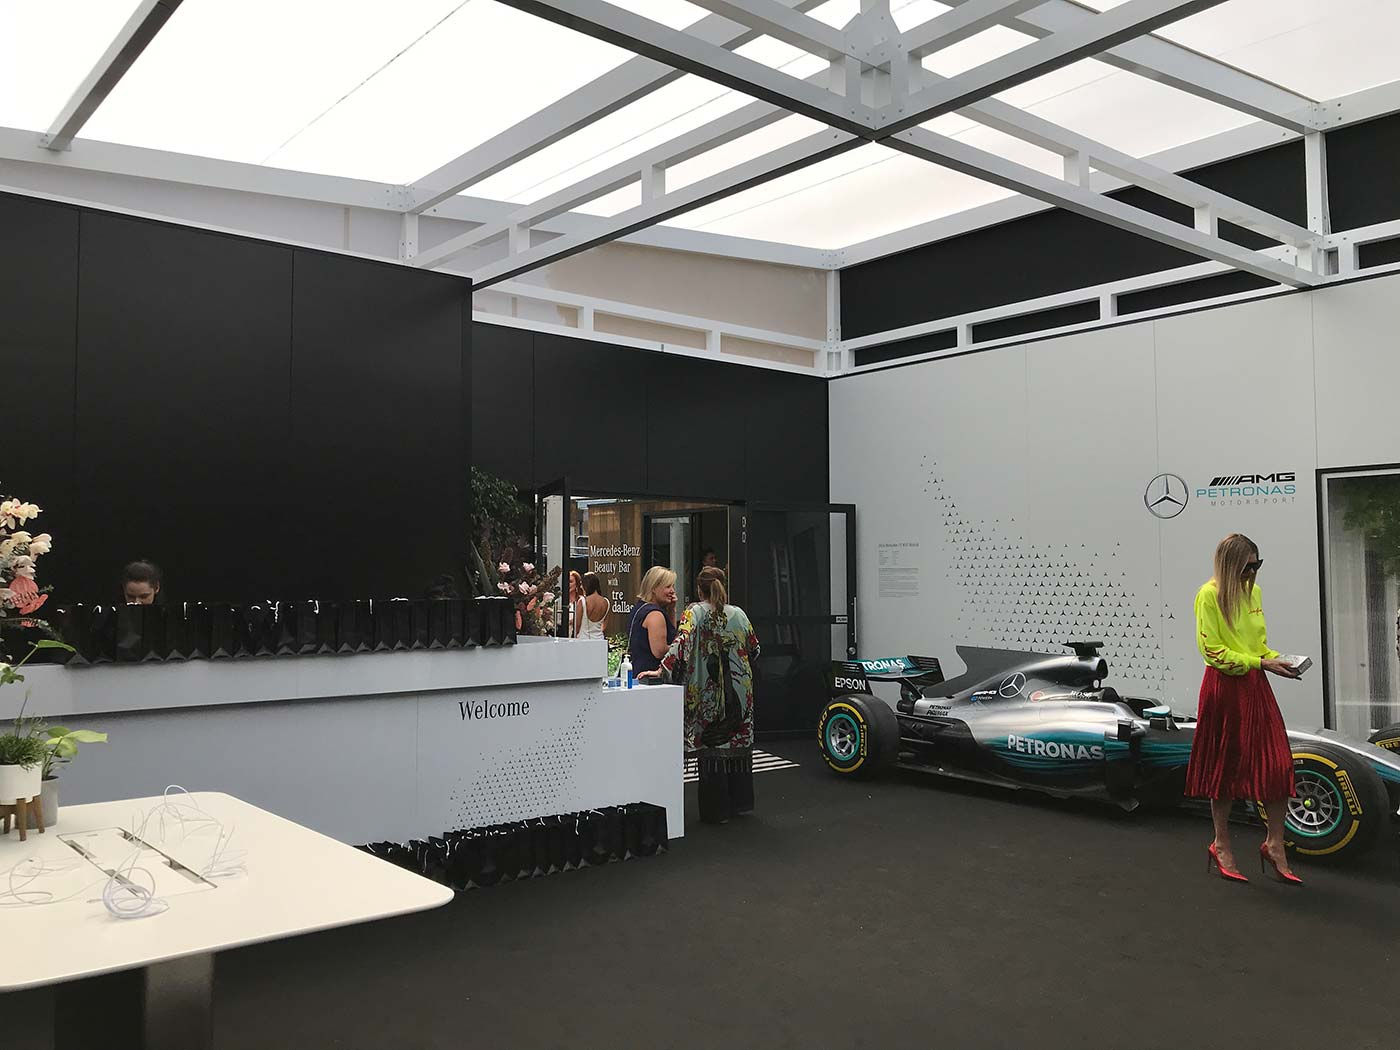 Mercedes-Benz-Star-Bar-Shipping-Container-Hospitality-Activation-Australian-Grand-Prix-2